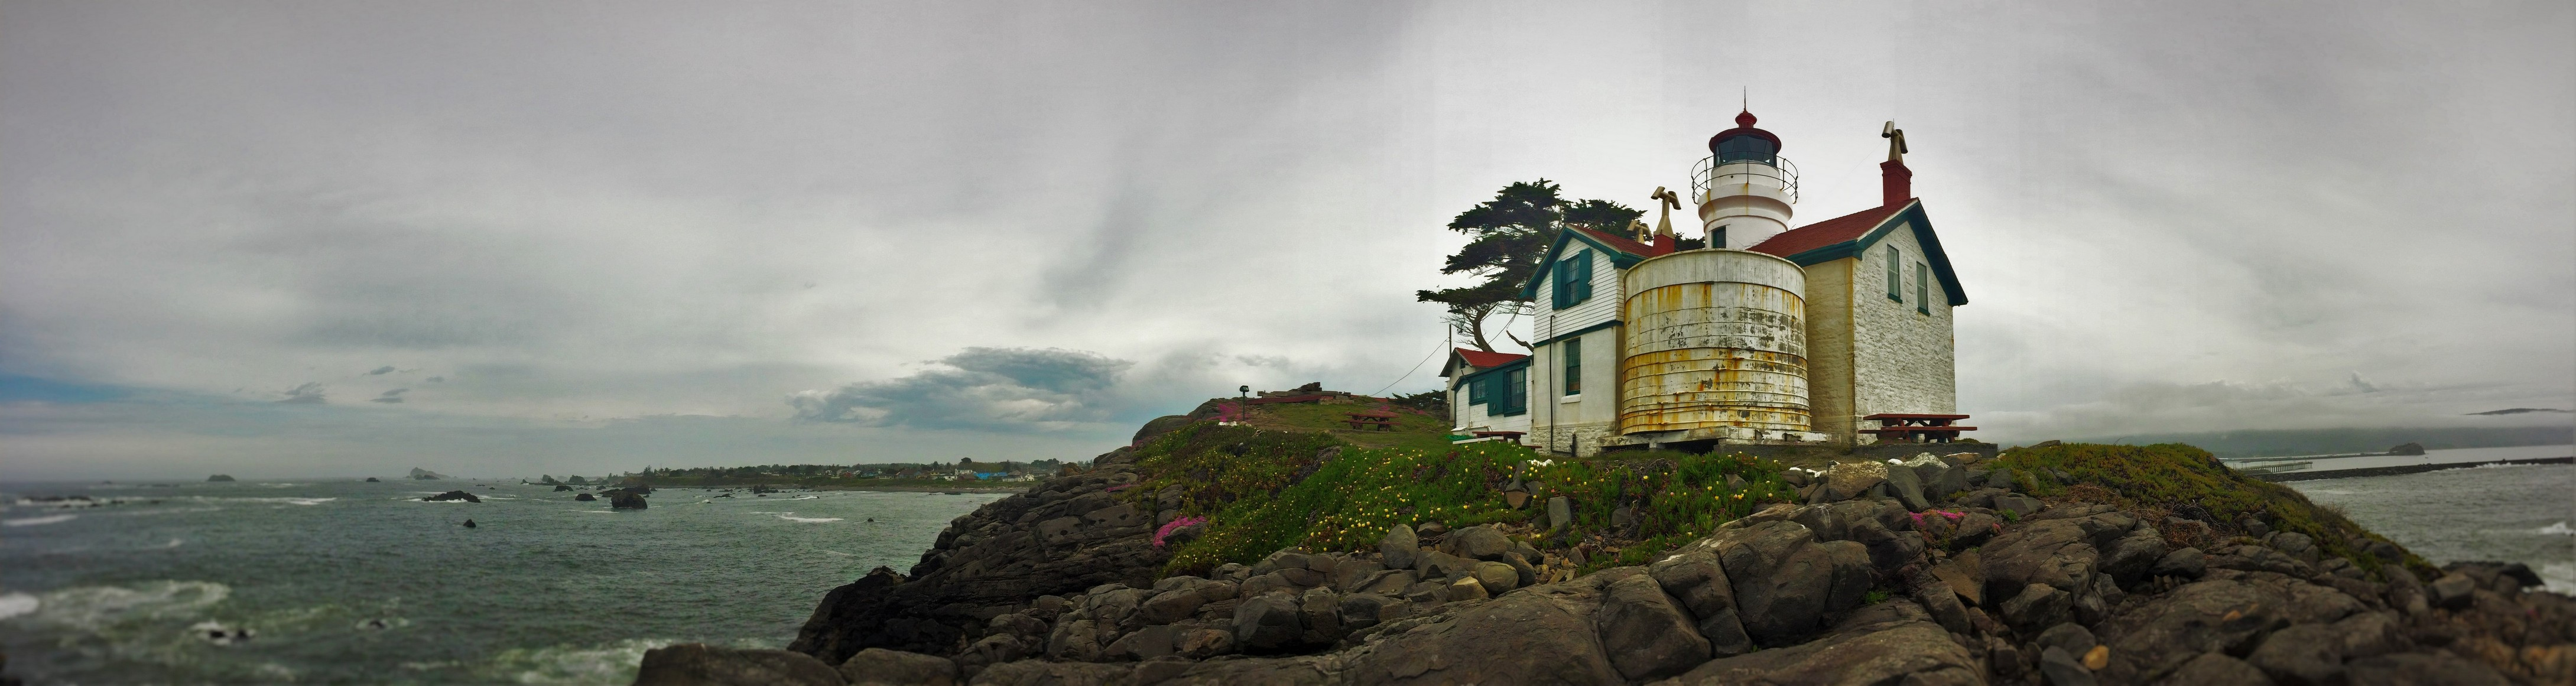 Battery Point Lighthouse Crescent City panoramic 1